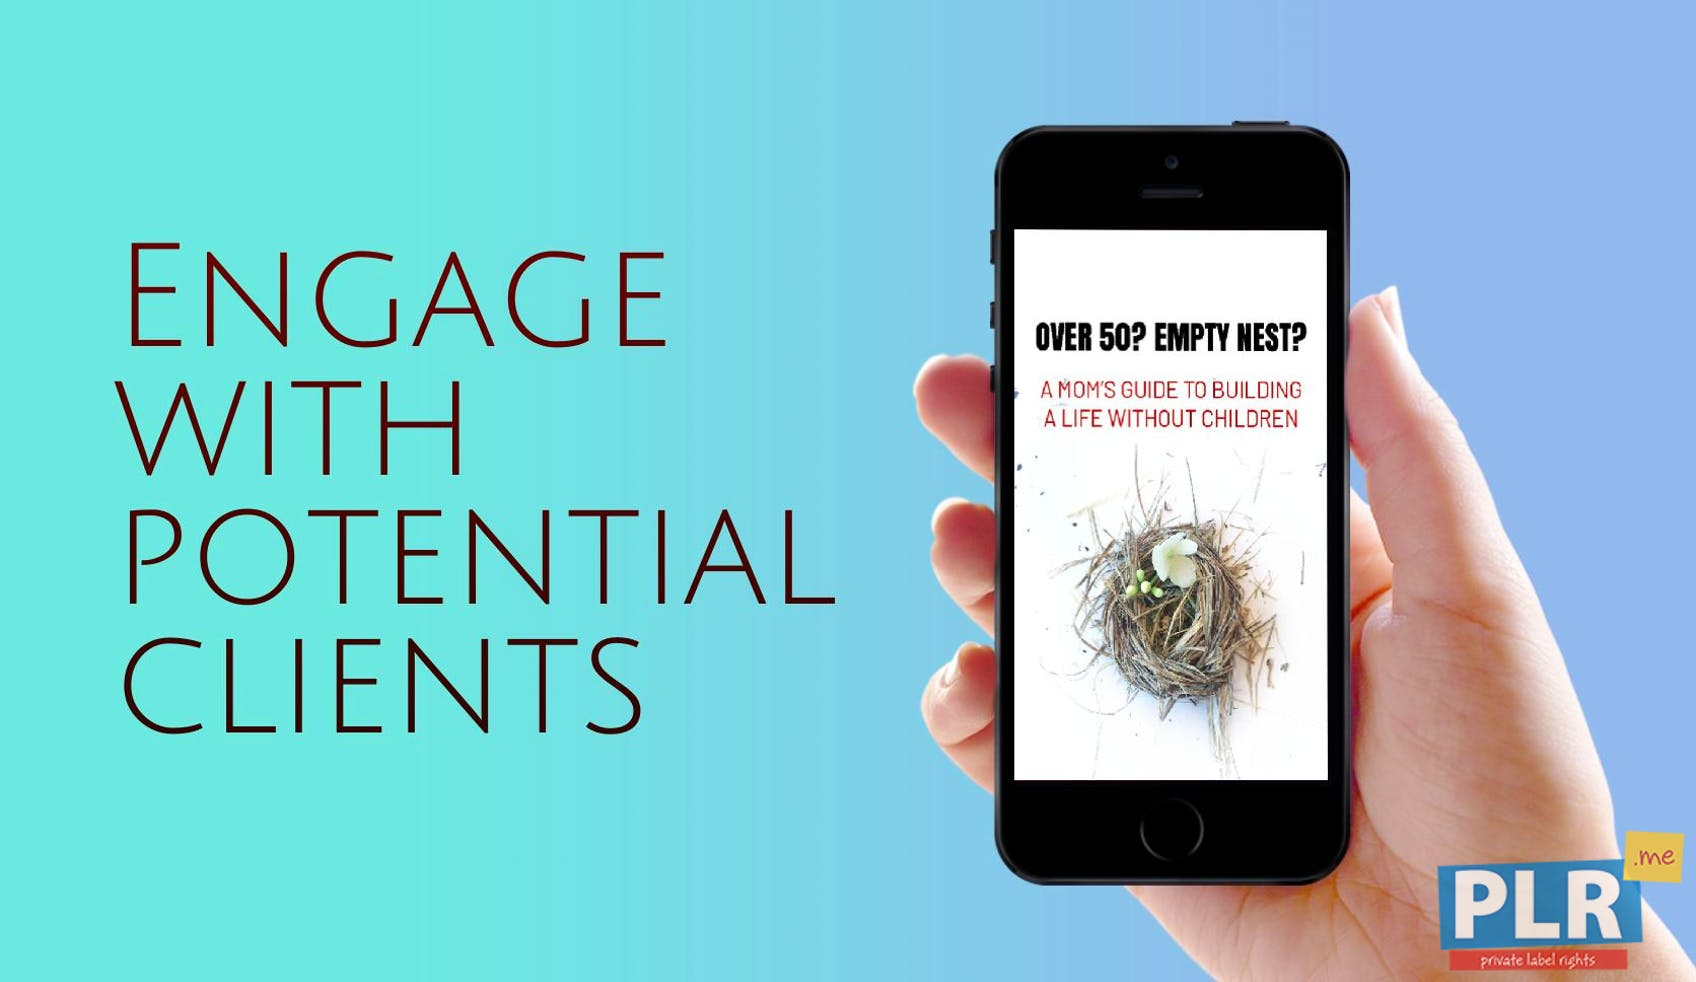 Over 50 - Empty Nest Guide